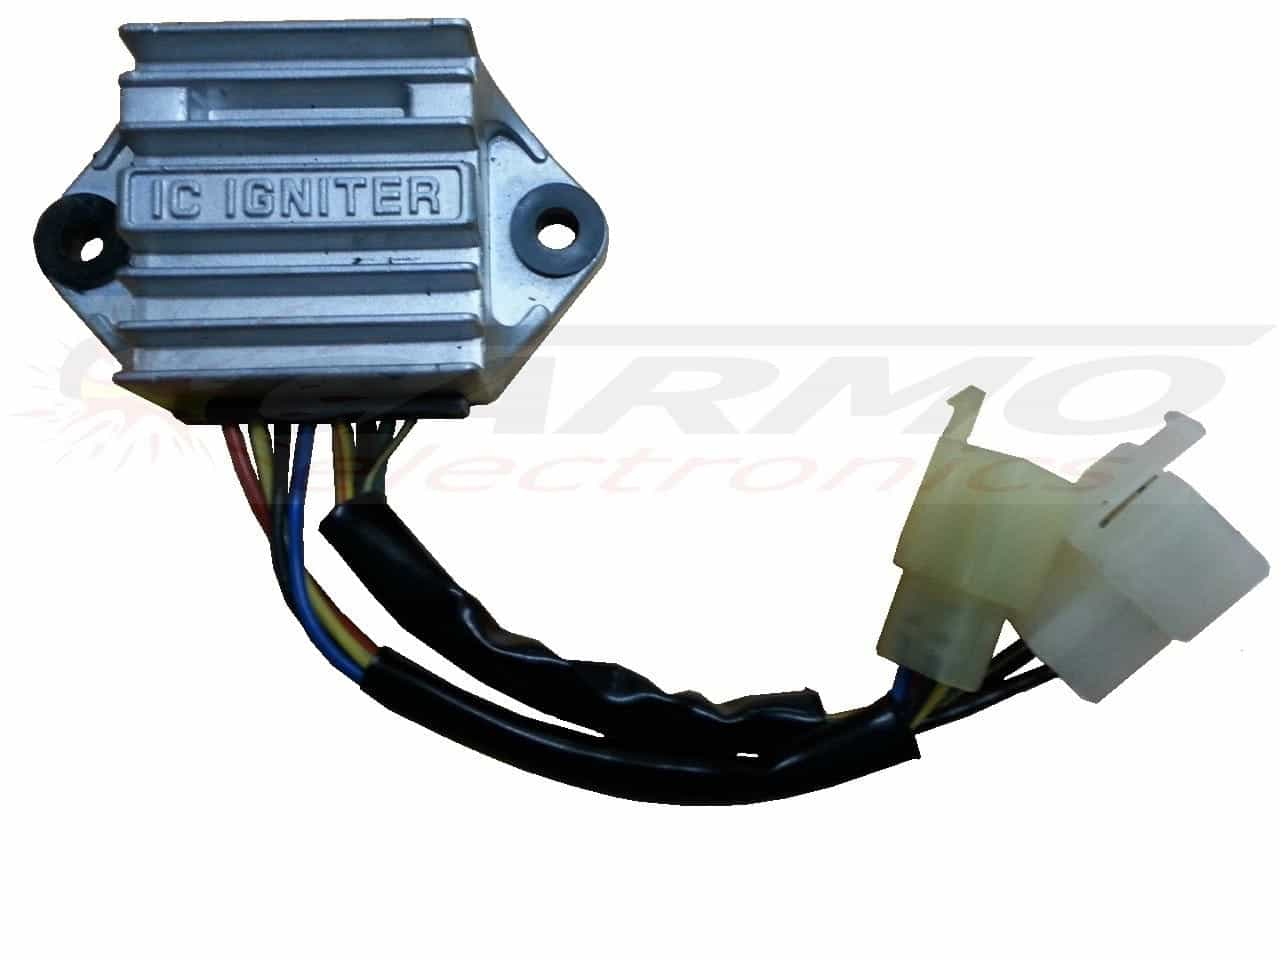 Kawasaki KZ550 21119 1020 cdi ignitor brain kawasaki carmo electronics, the place for parts or electronics ic igniter kawasaki wiring diagram at creativeand.co